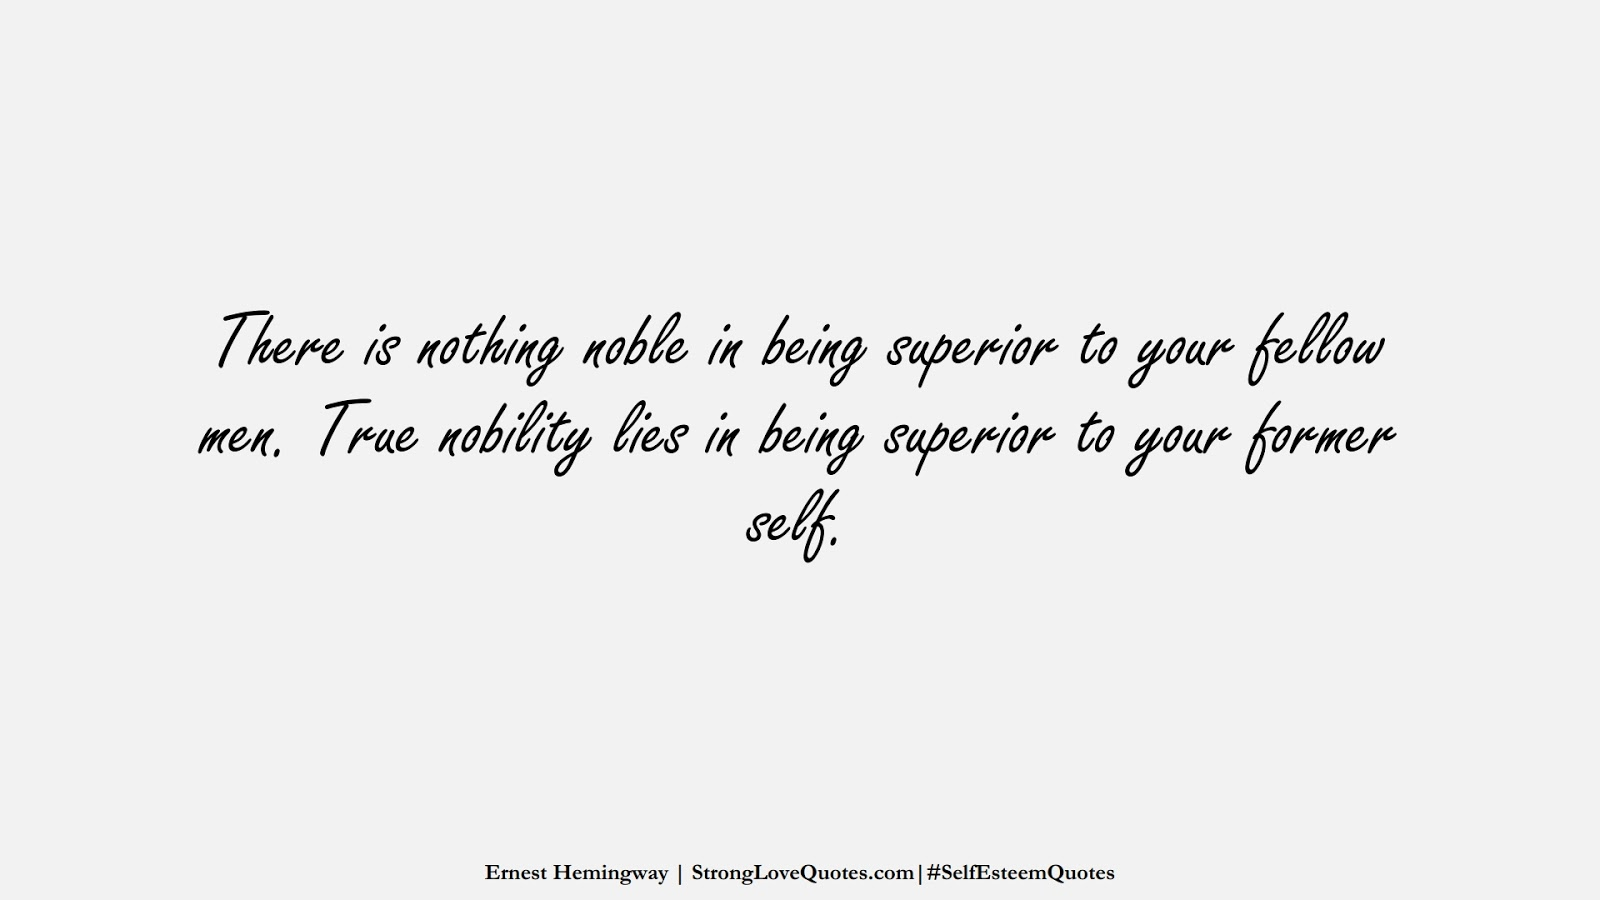 There is nothing noble in being superior to your fellow men. True nobility lies in being superior to your former self. (Ernest Hemingway);  #SelfEsteemQuotes